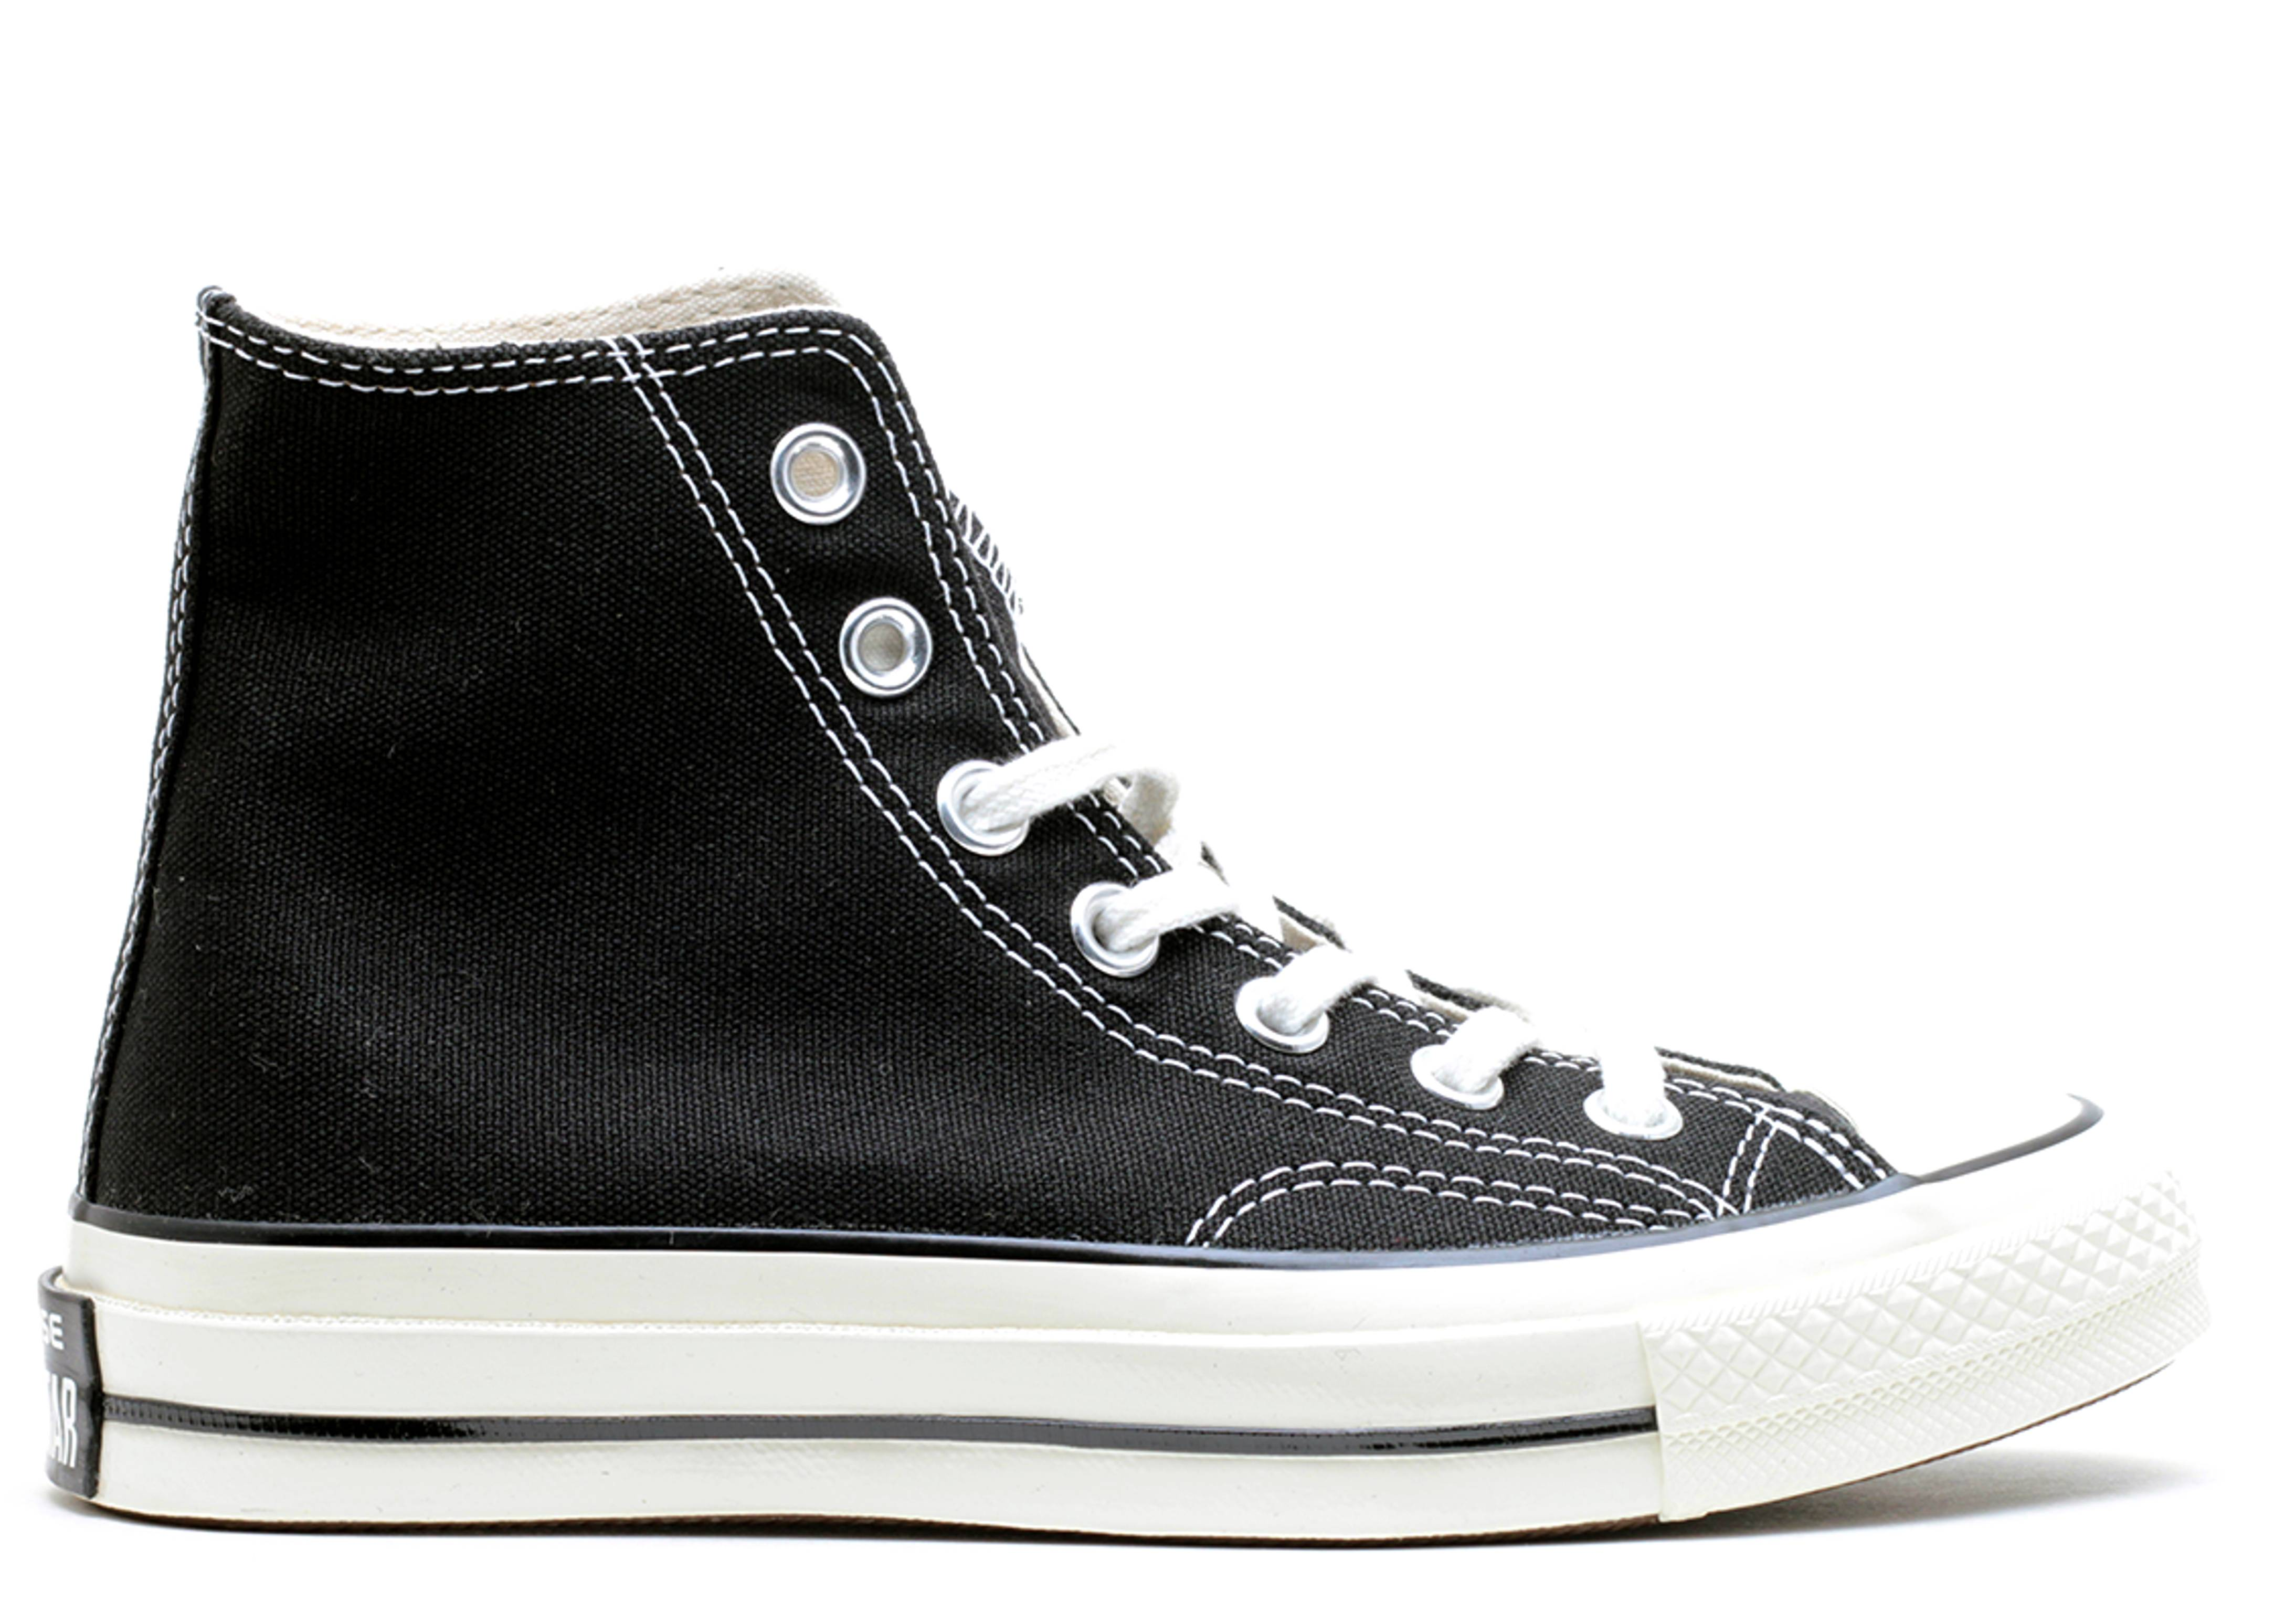 0f5a39938a7 Converse - More Sneakers